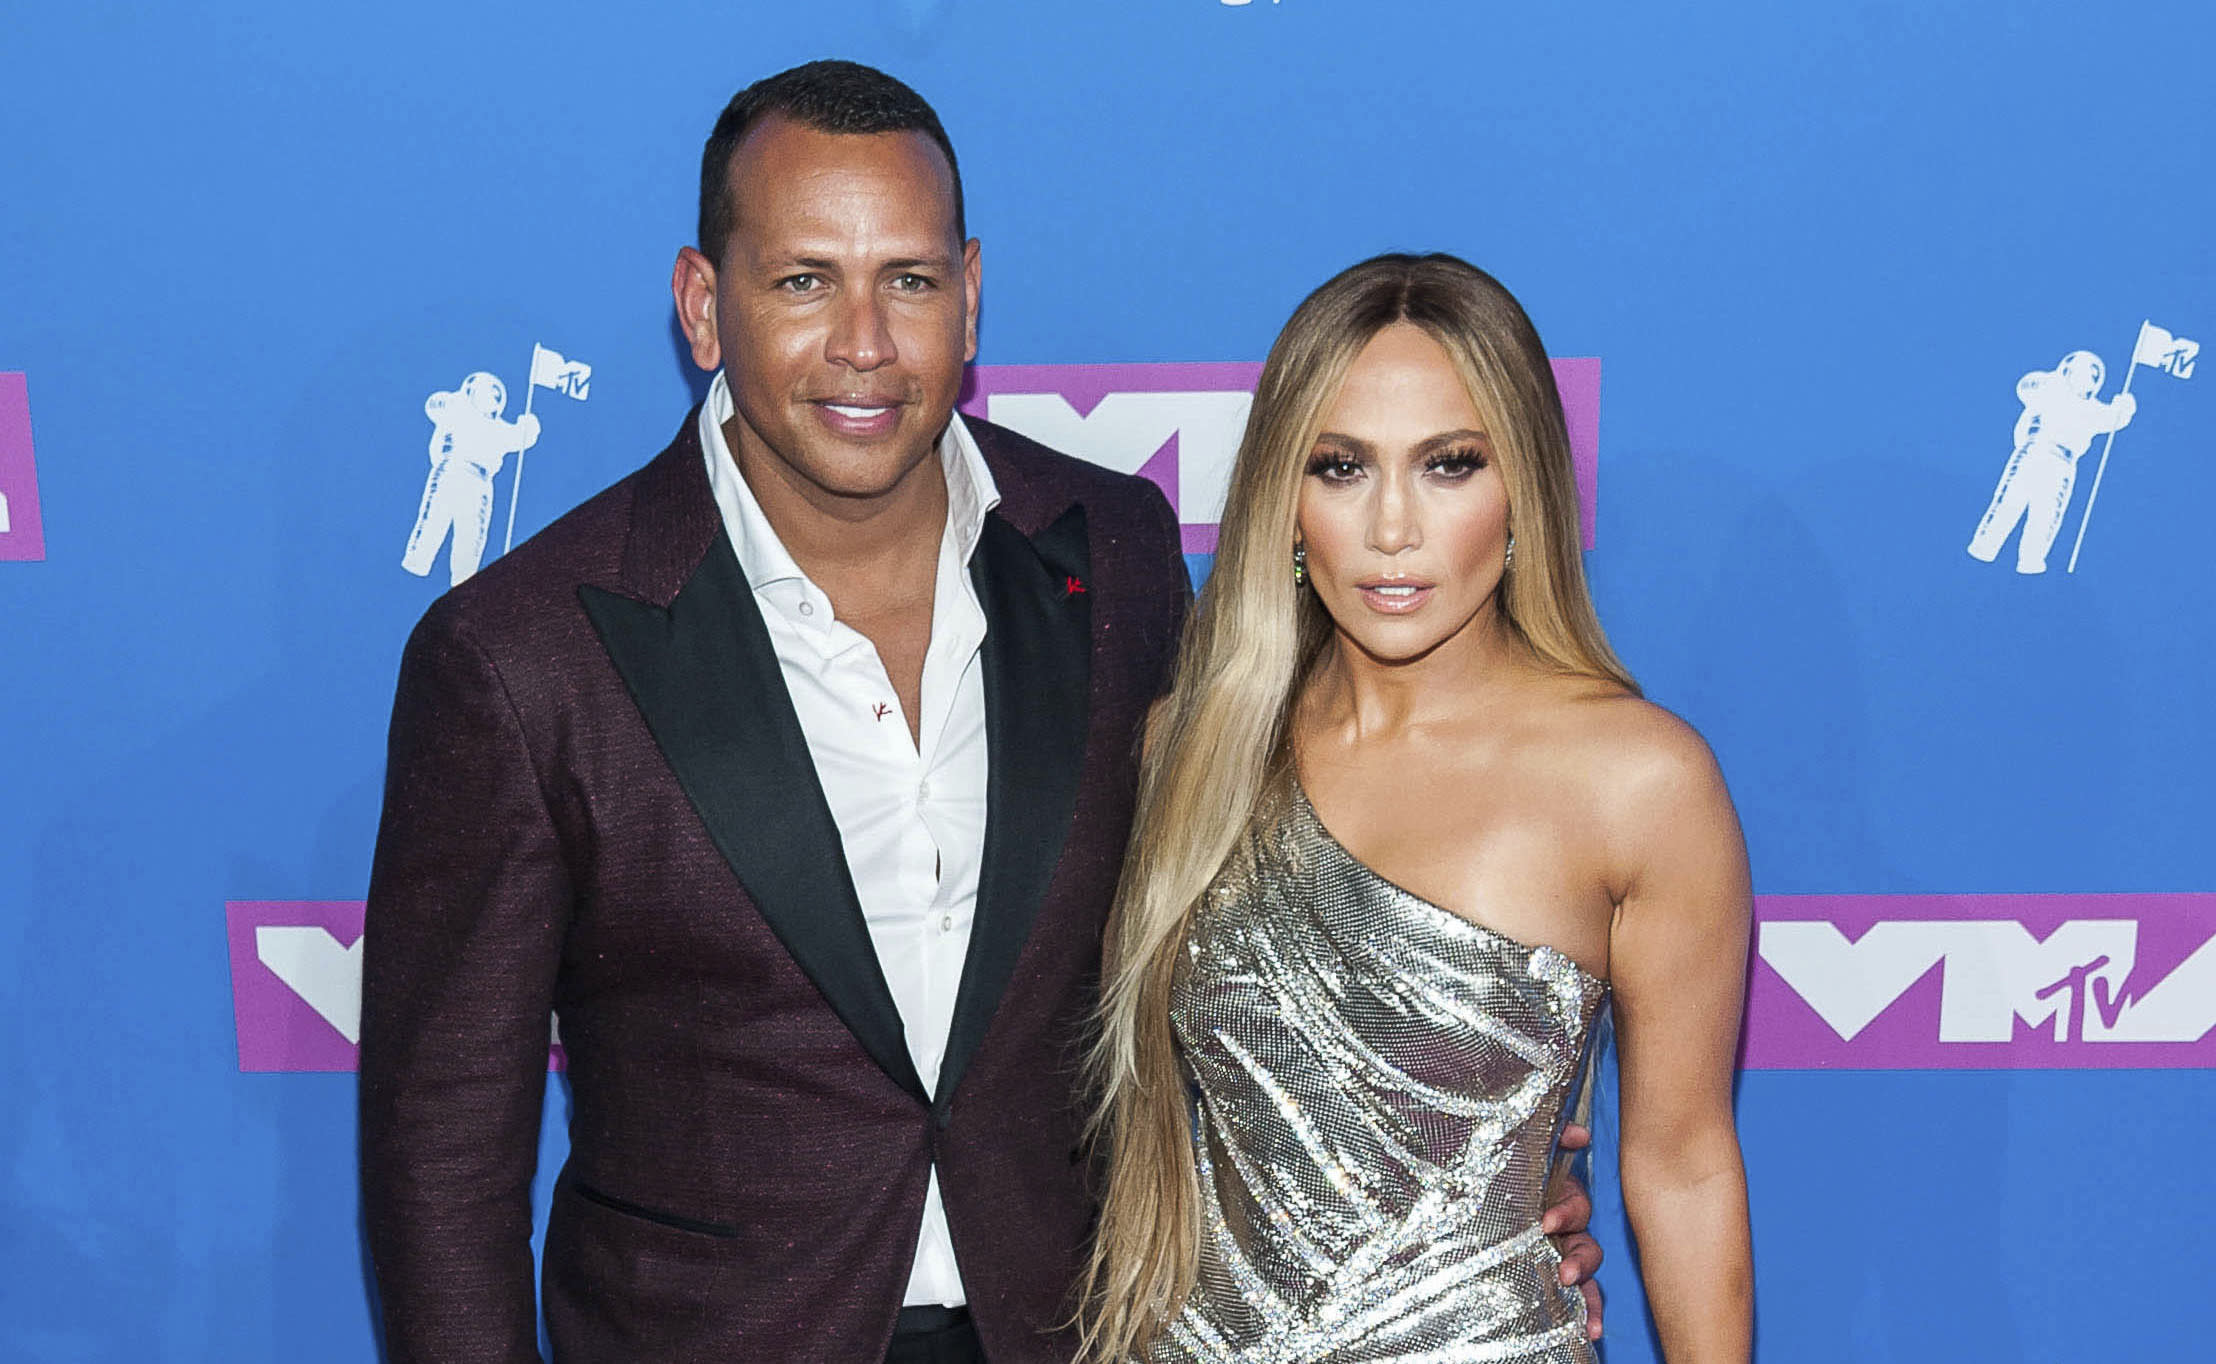 Jennifer Lopez 'a little heartbroken' over postponed wedding